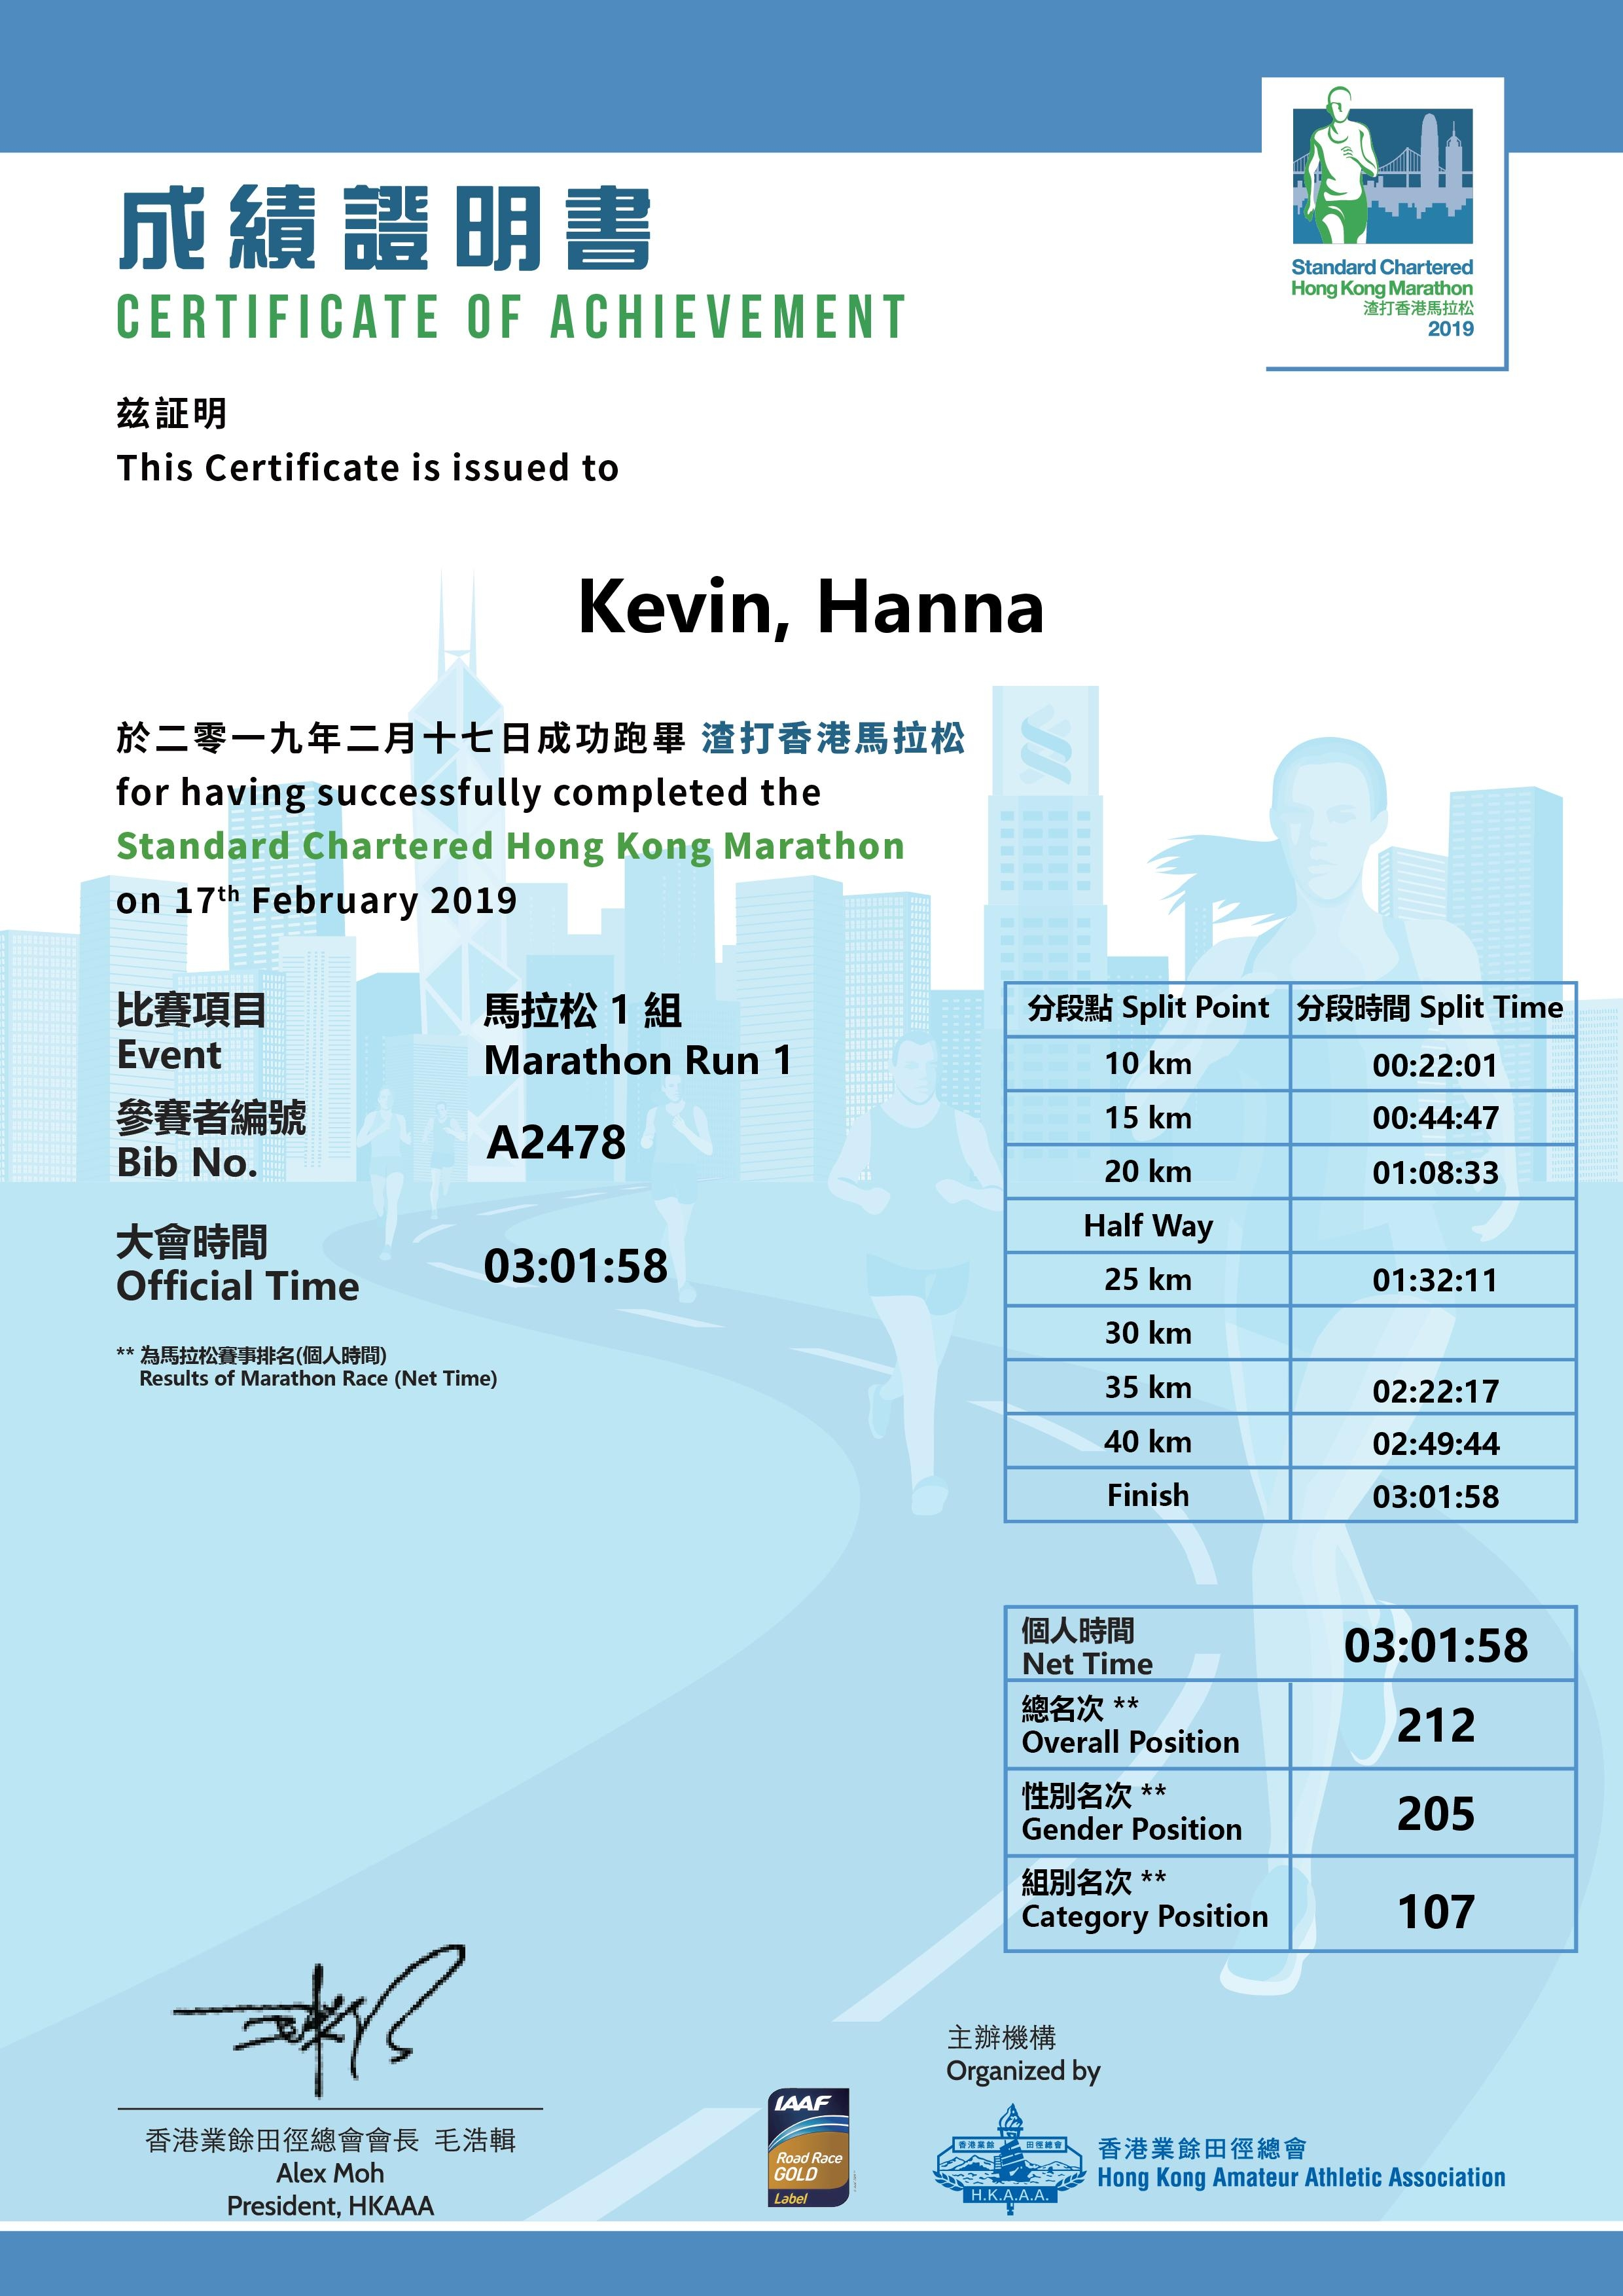 February 18, 2019 – The Hong Kong Marathon Results — Something Is